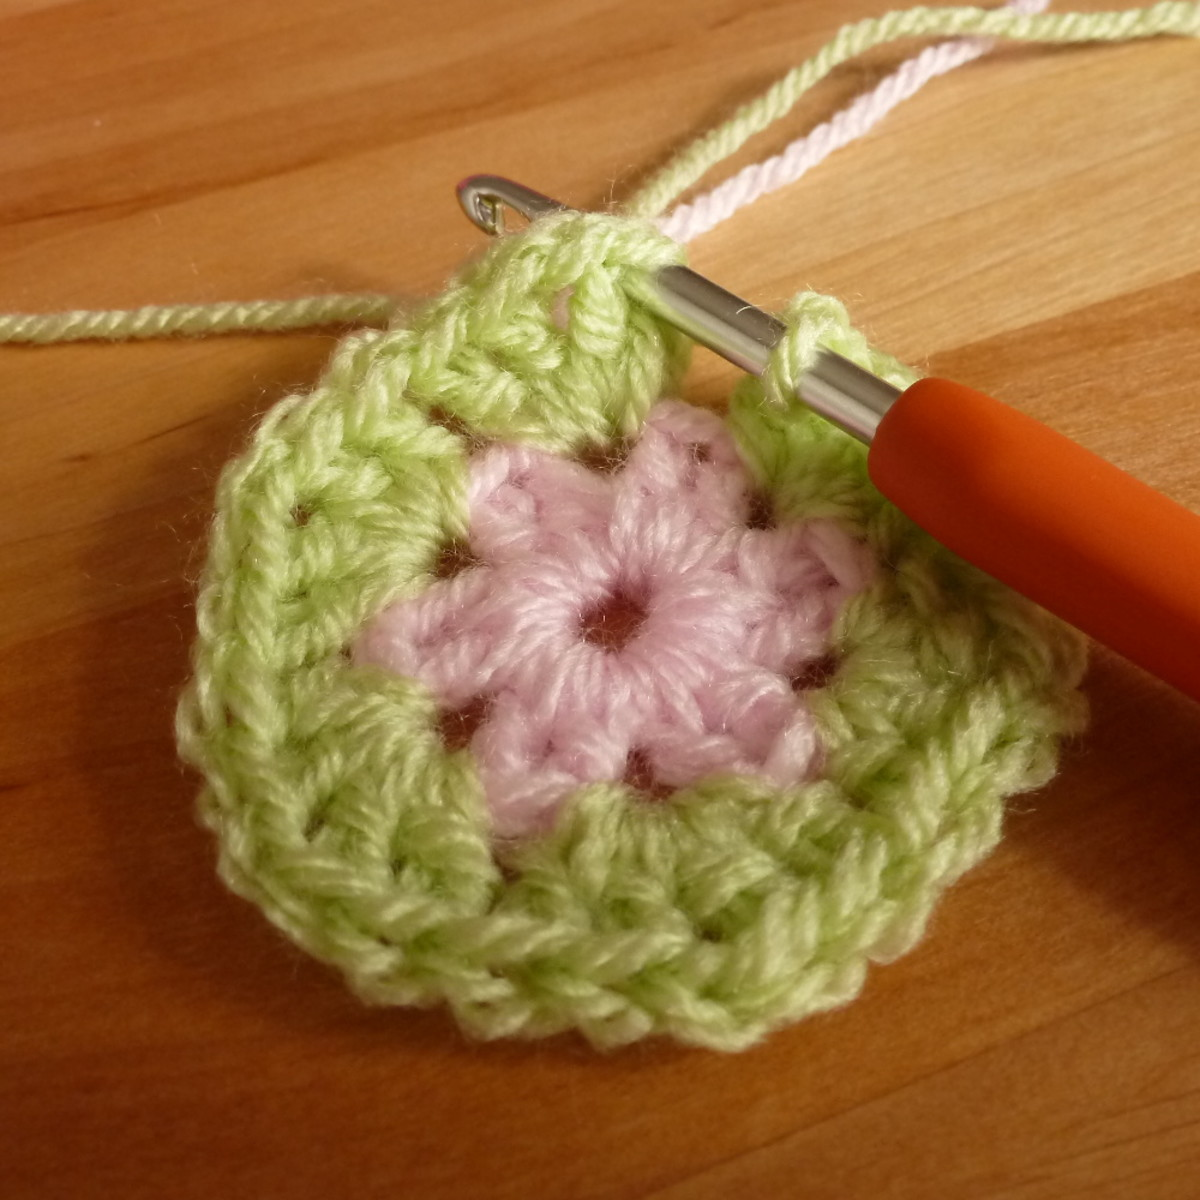 Adding in a second color to the large crochet flower design.